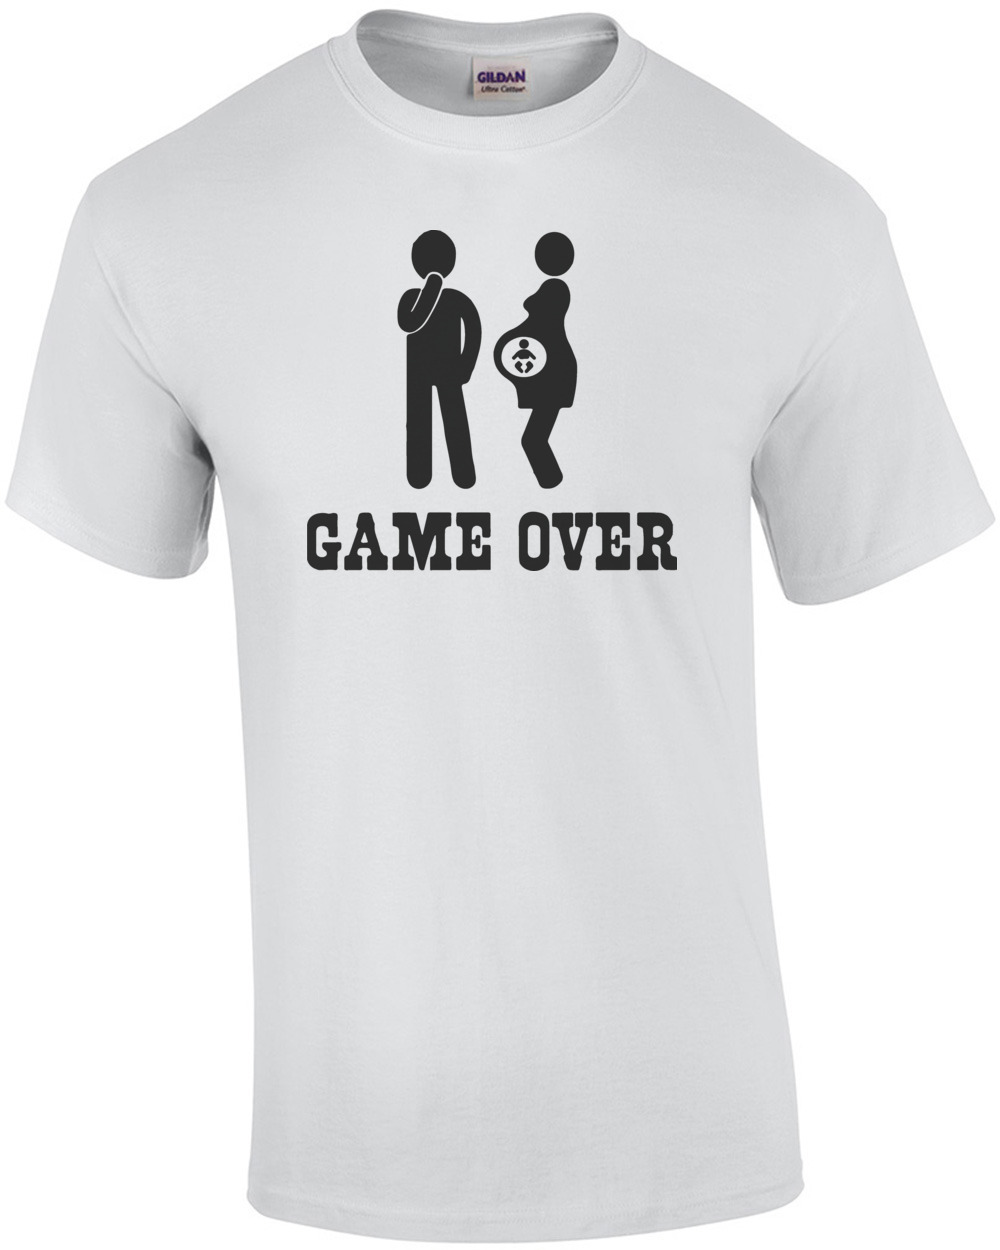 Game Over - Funny Pregnancy T-Shirt shirt